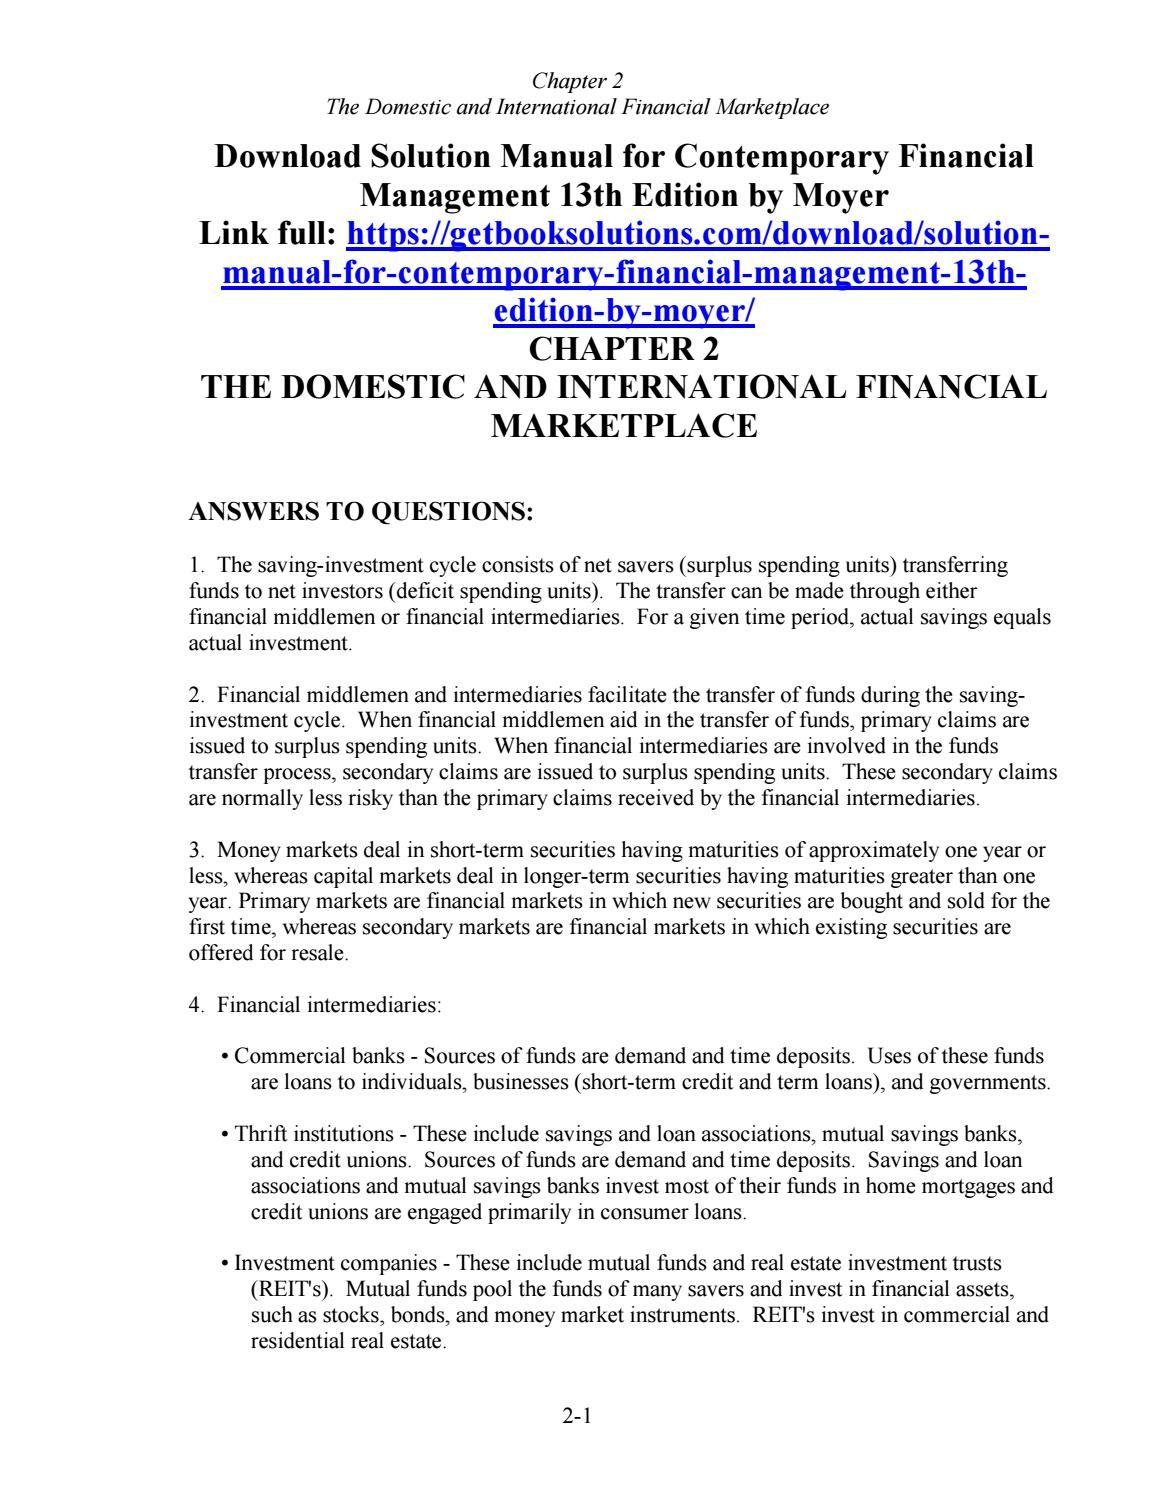 download solution manual for contemporary financial management 13th rh pinterest co uk Physics Solutions Manual Principles of Manufacturing Processes Metal Solutions Manual